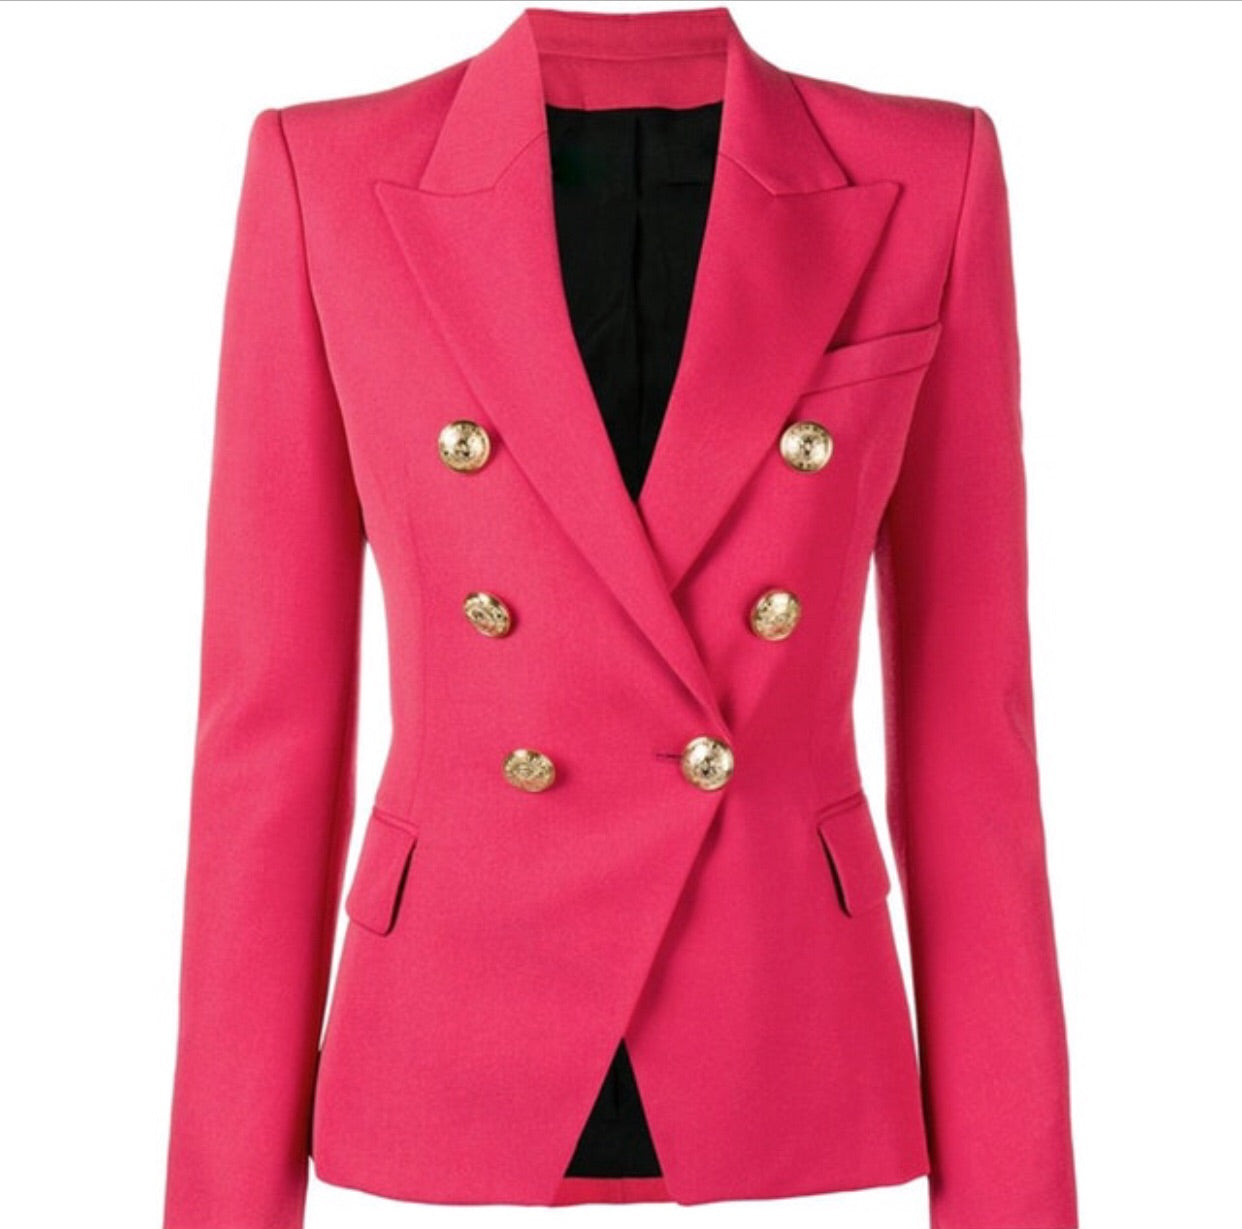 a7a849cec Double Breasted Blazer with Gold Hardware - Hot Pink